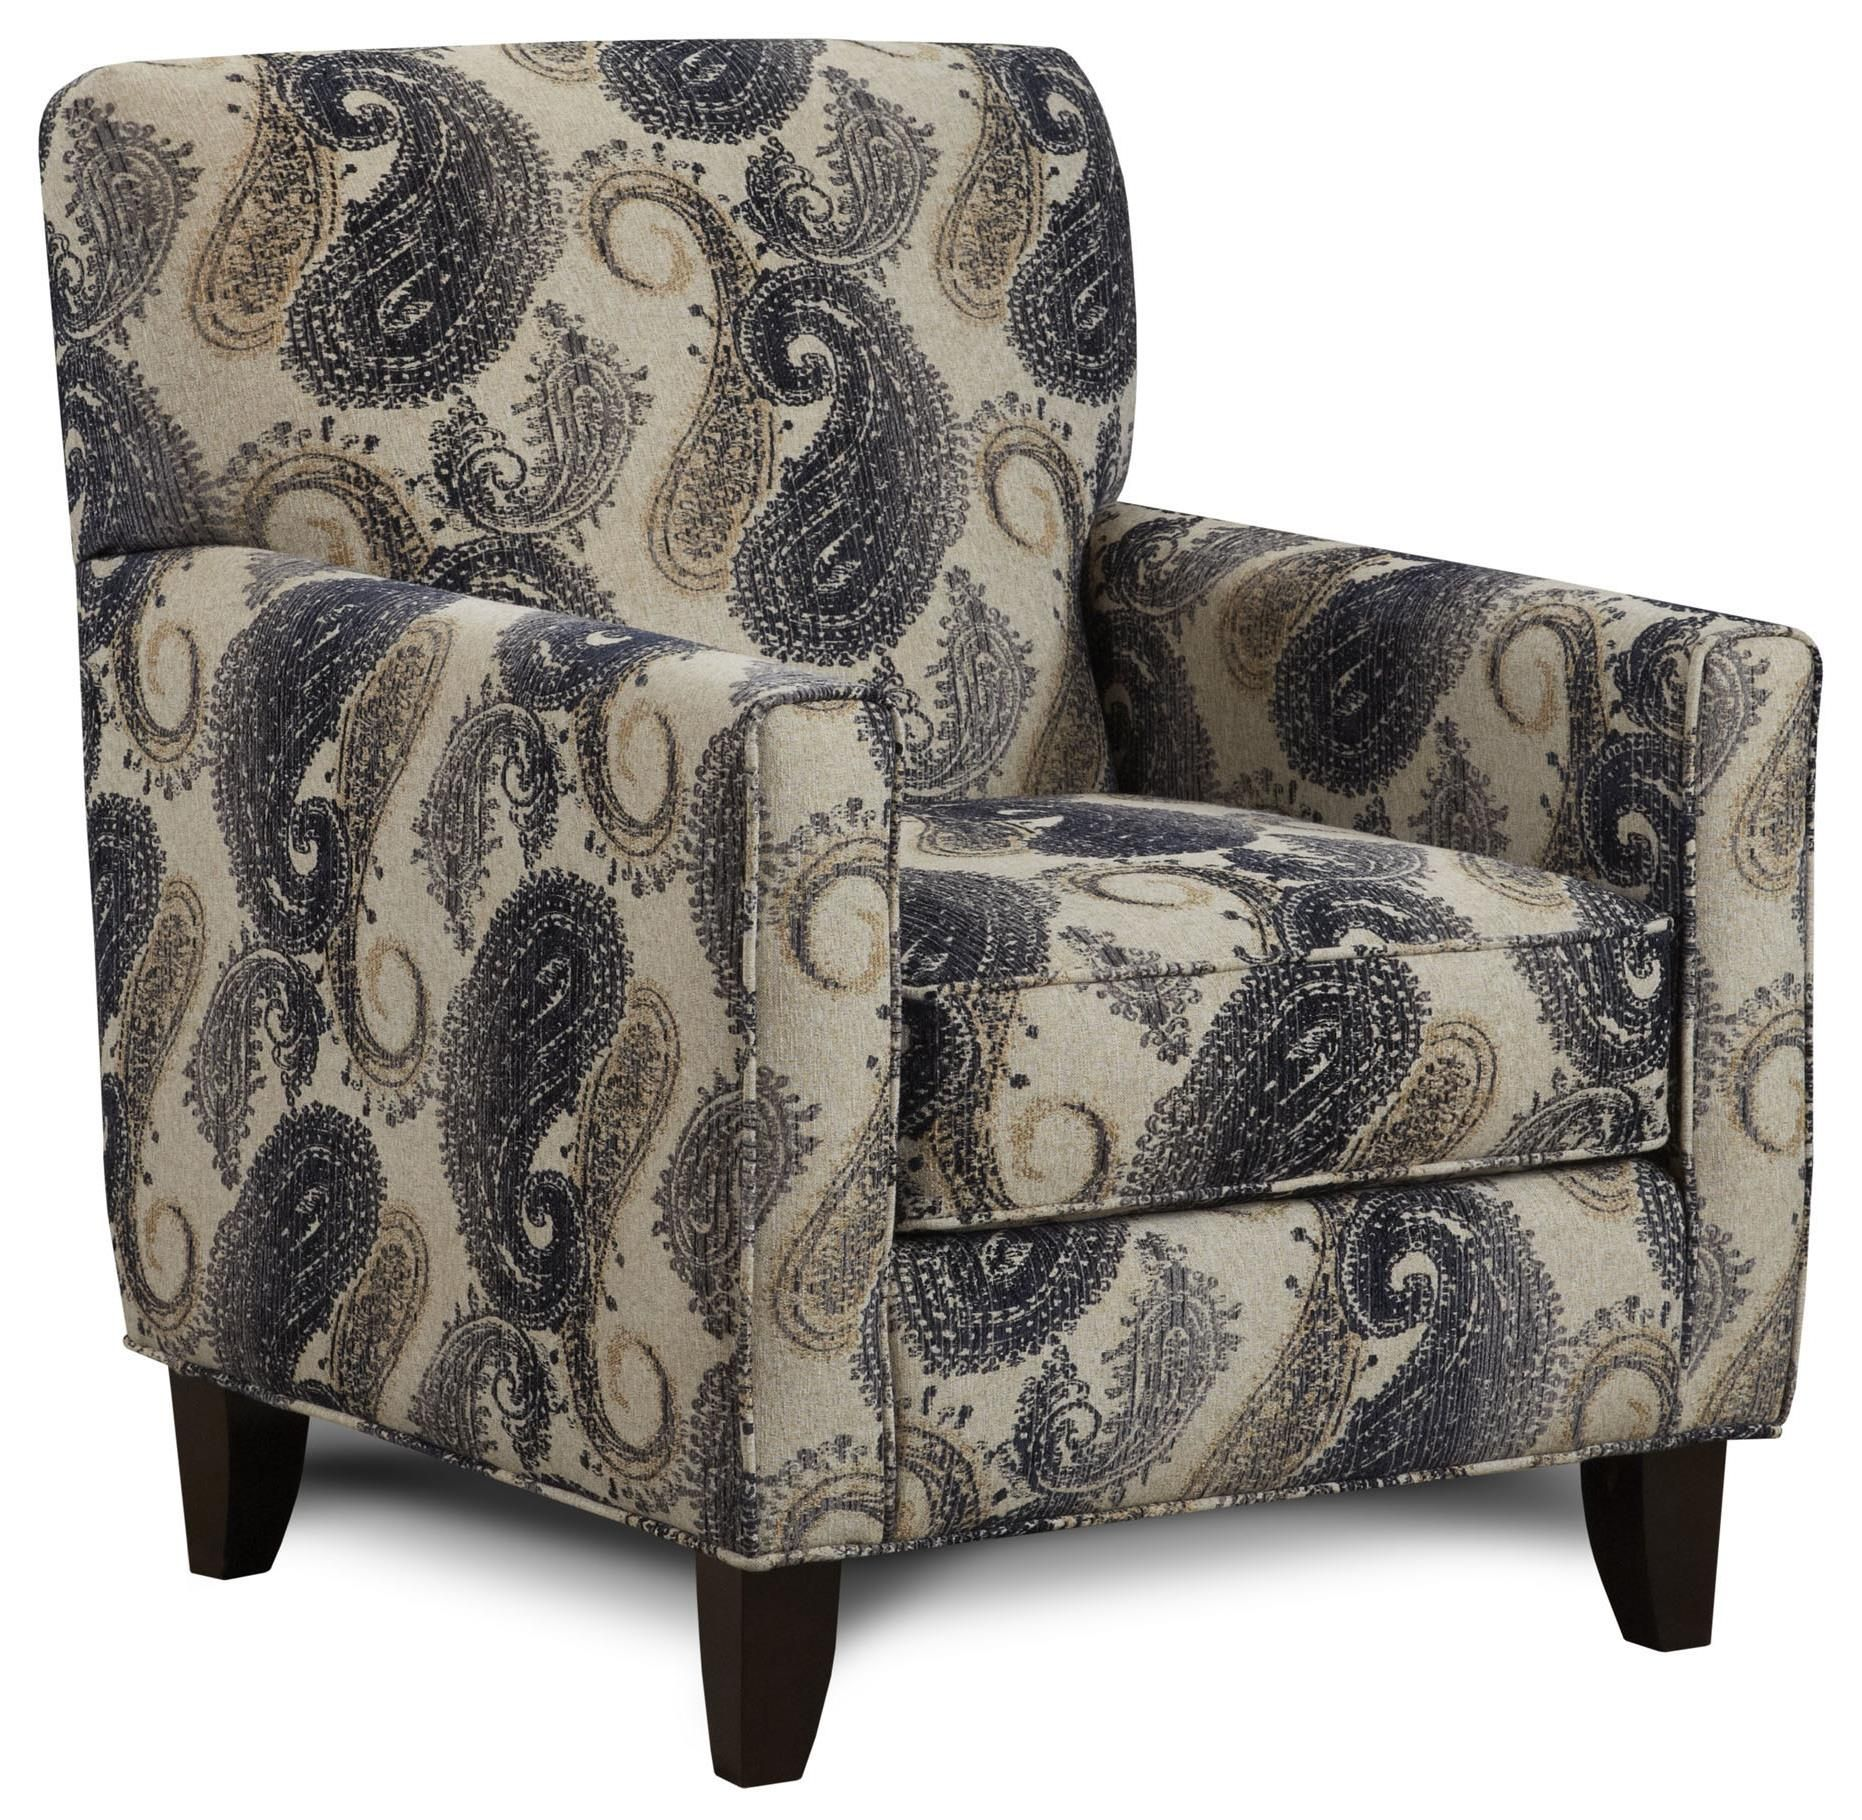 702 Accent Chair by Fusion Furniture Fusion furniture